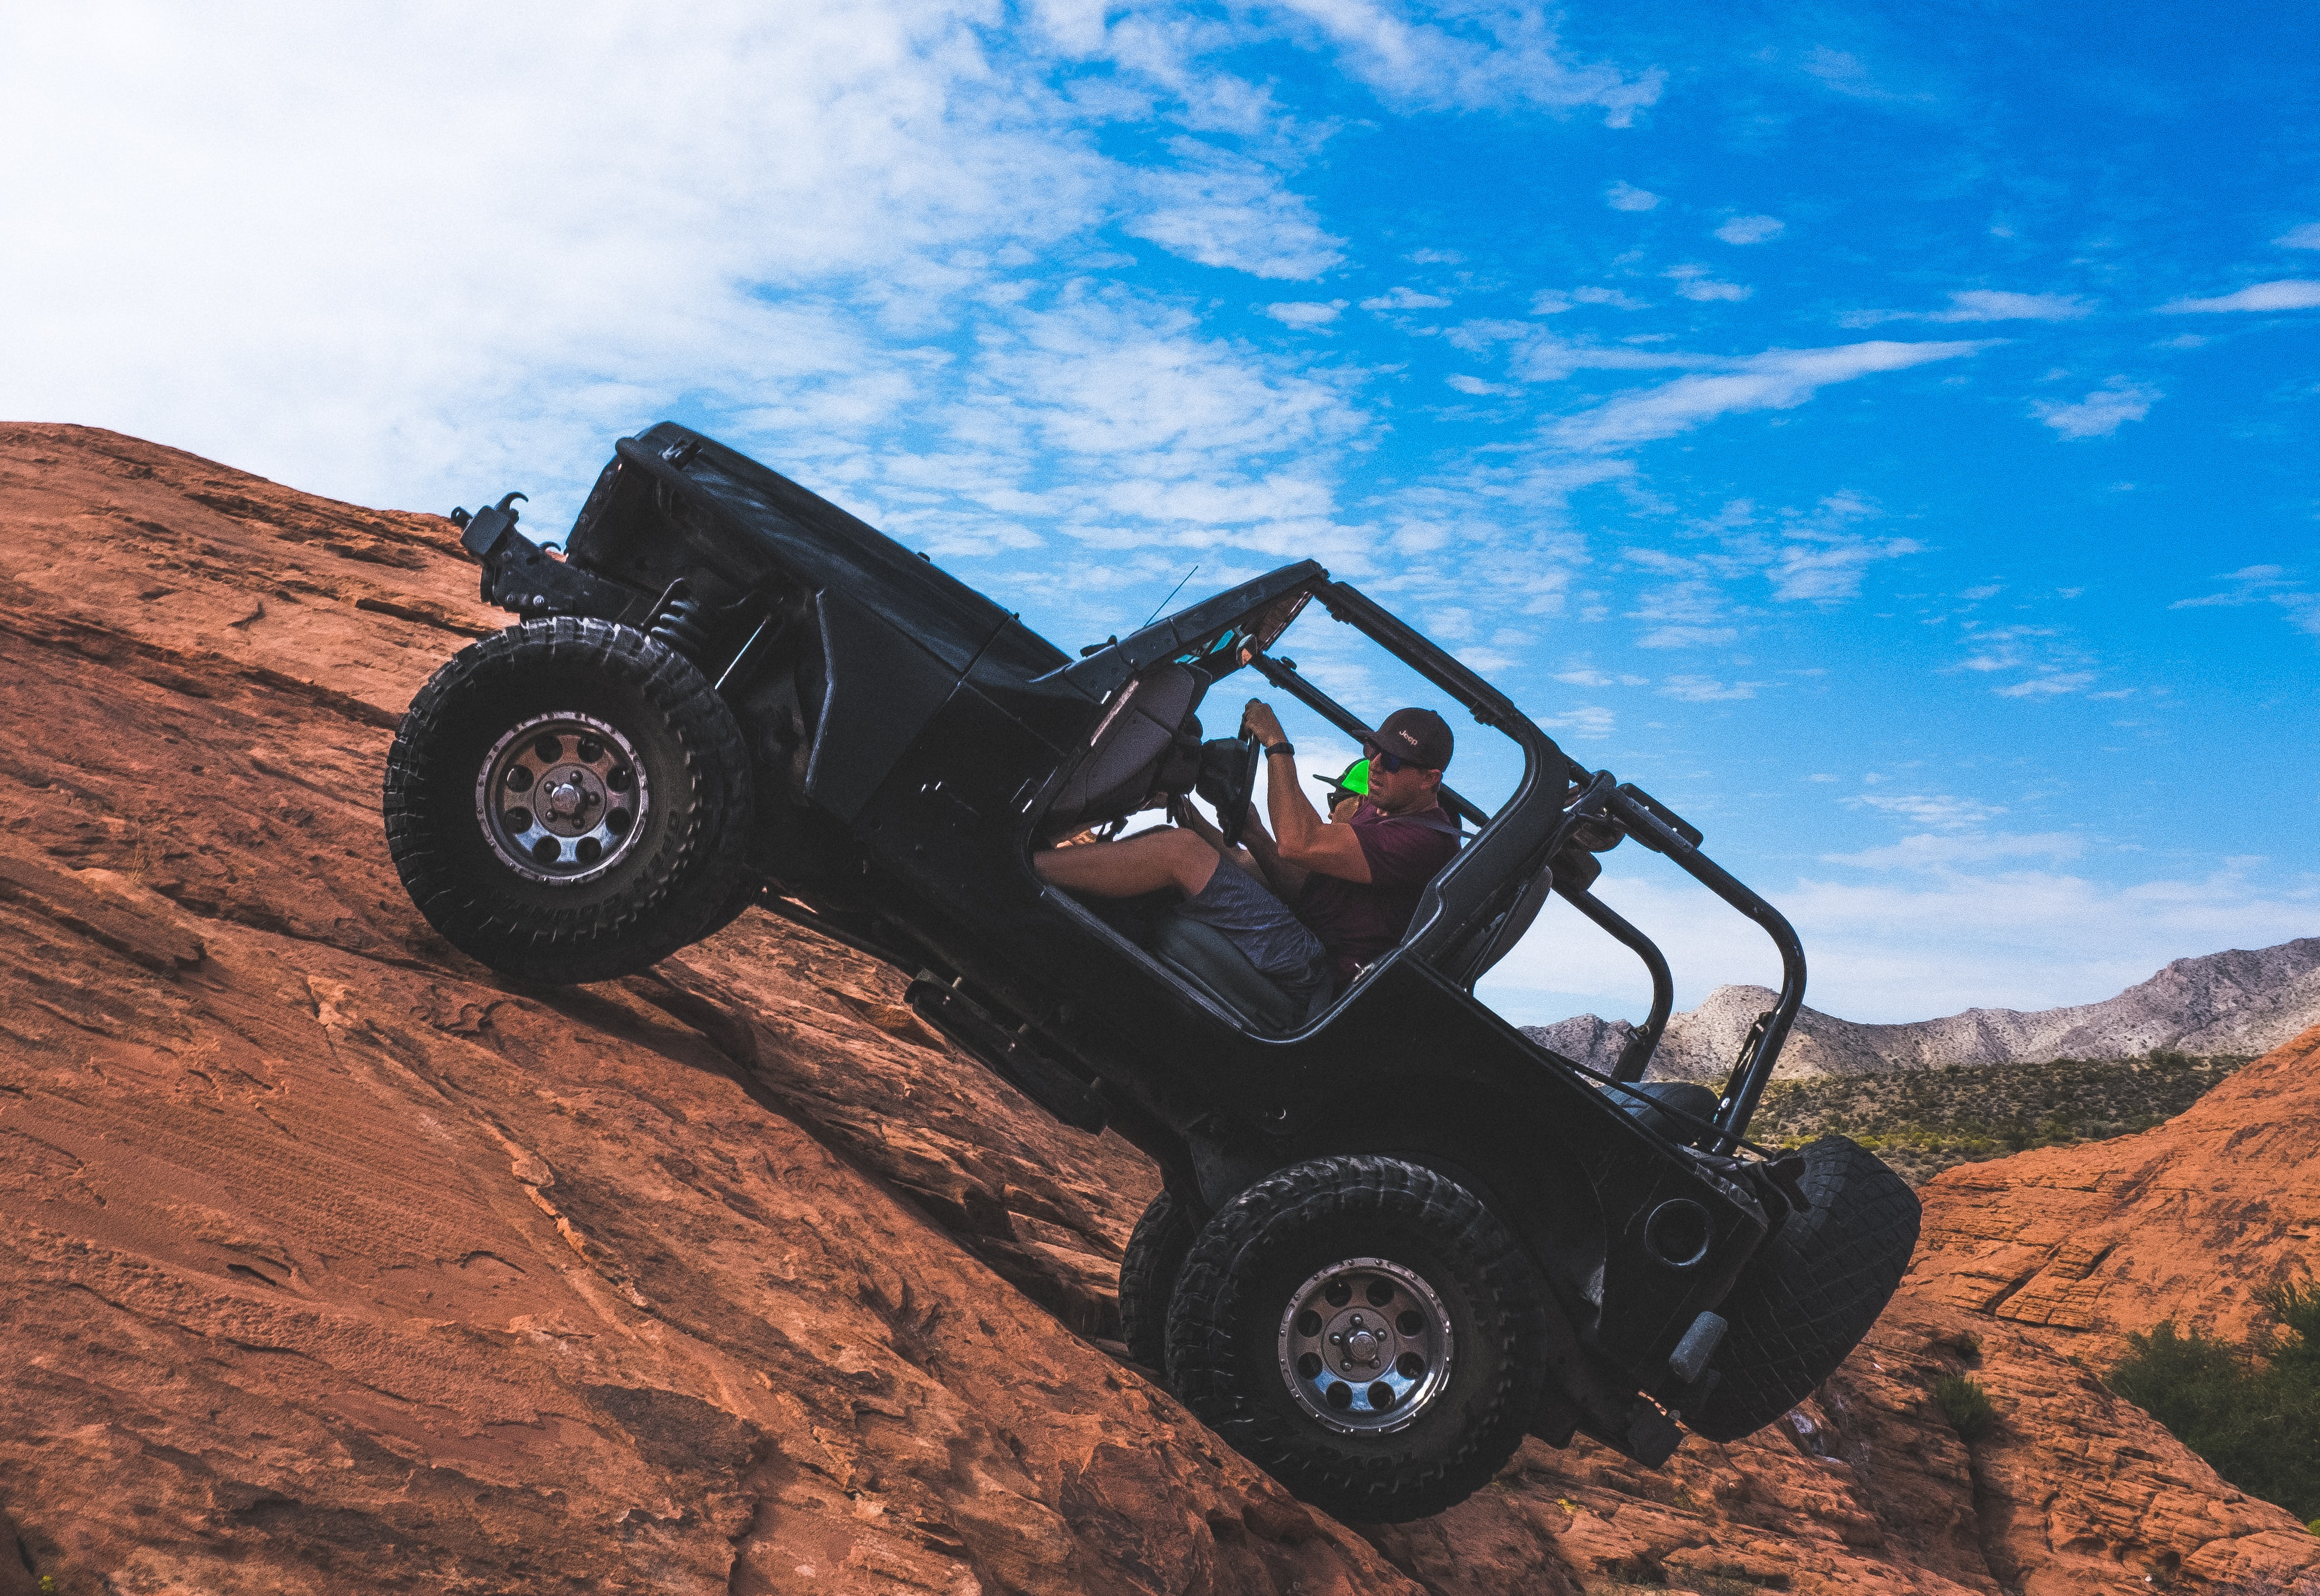 man riding a black off-road vehicle